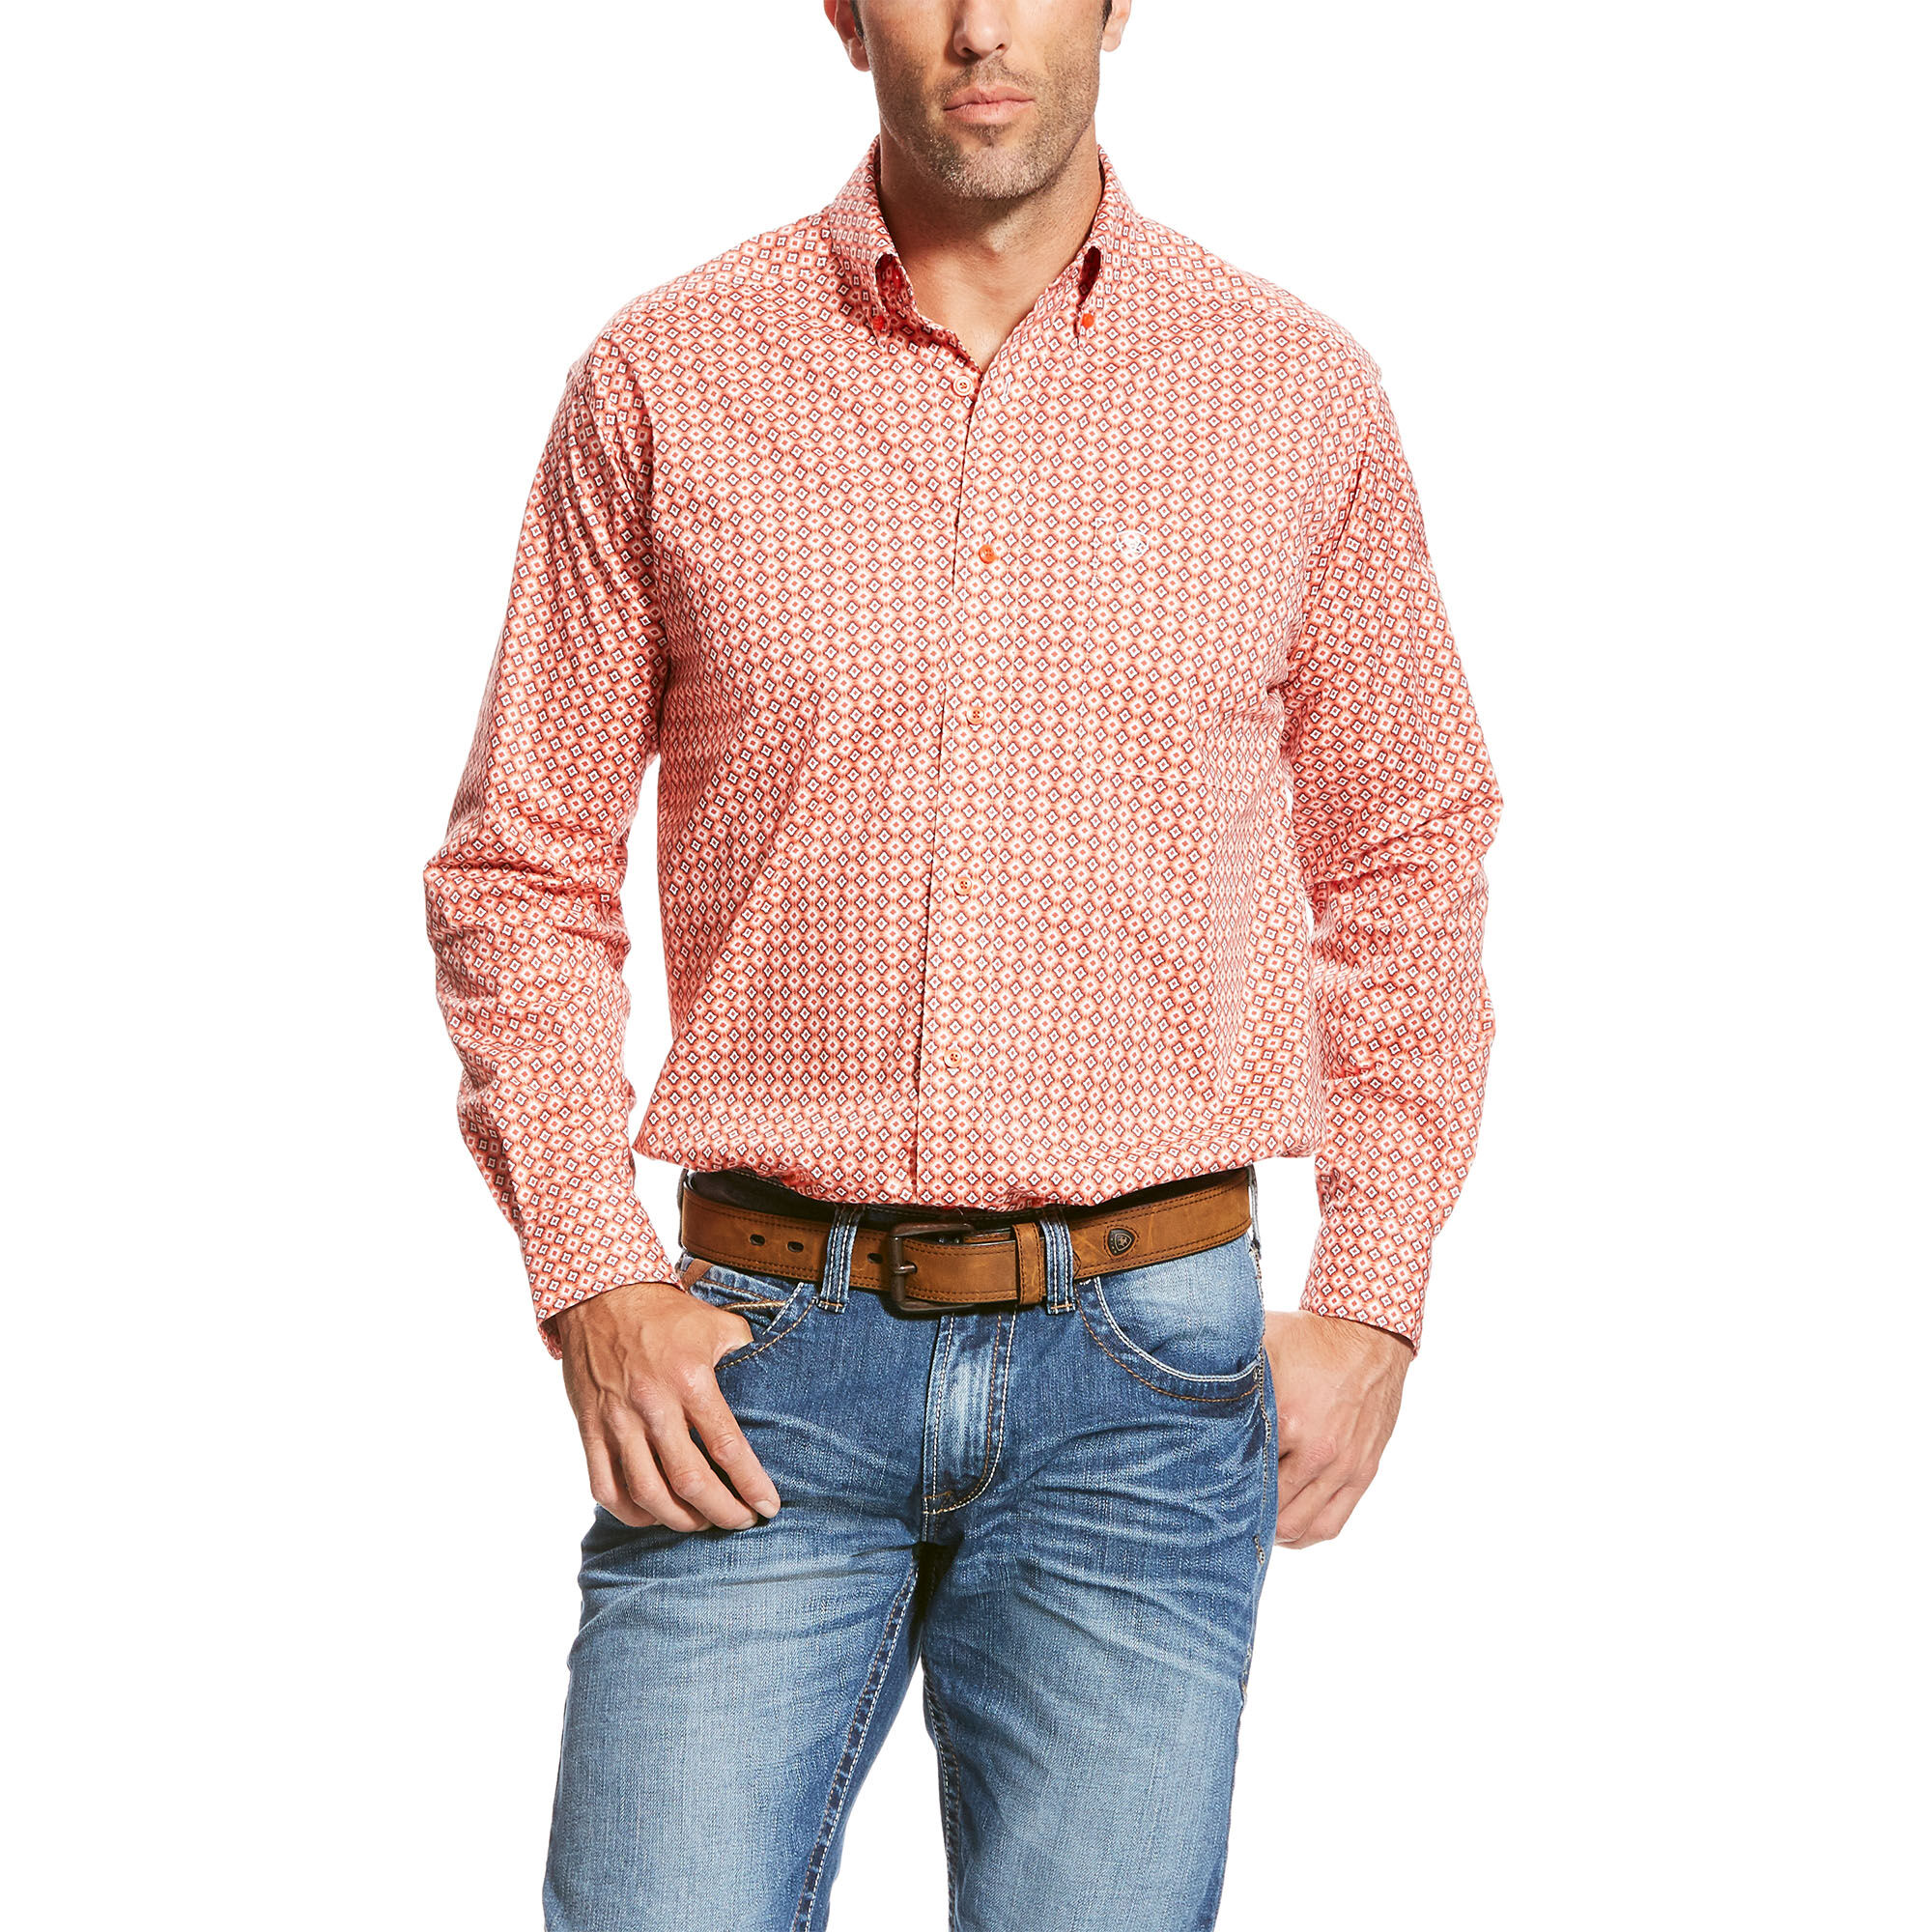 Pacquin Stretch Shirt